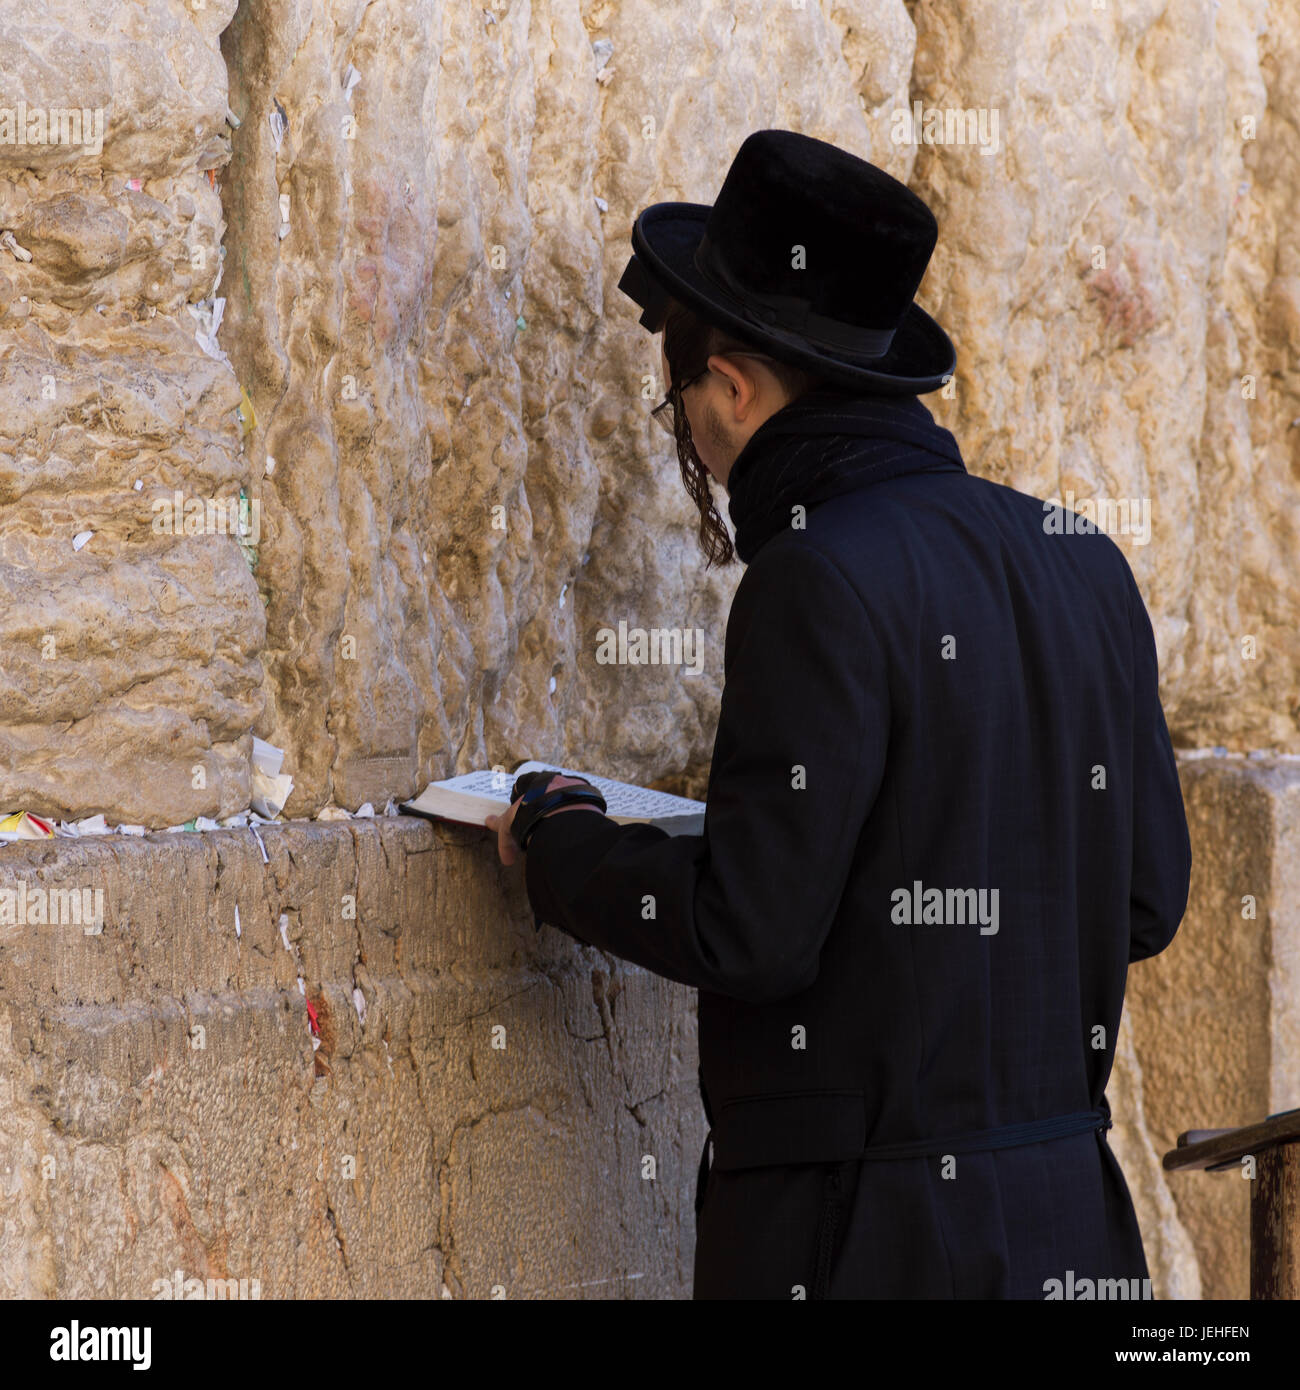 An orthodox jew standing at the Wailing Wall, old city of Jerusalem; Jerusalem, Israel - Stock Image